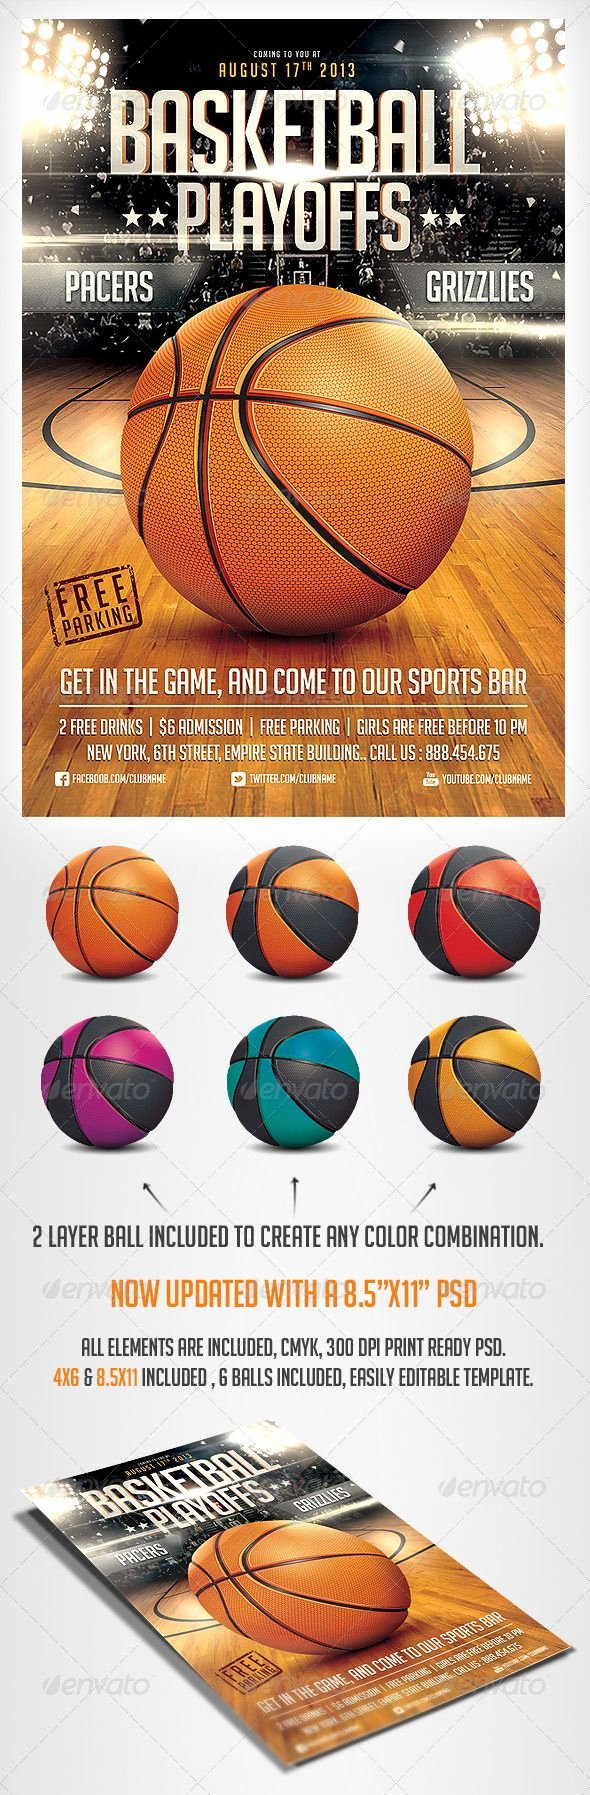 Free Basketball Flyer Template Elegant 17 Best Images About Flyers On Pinterest